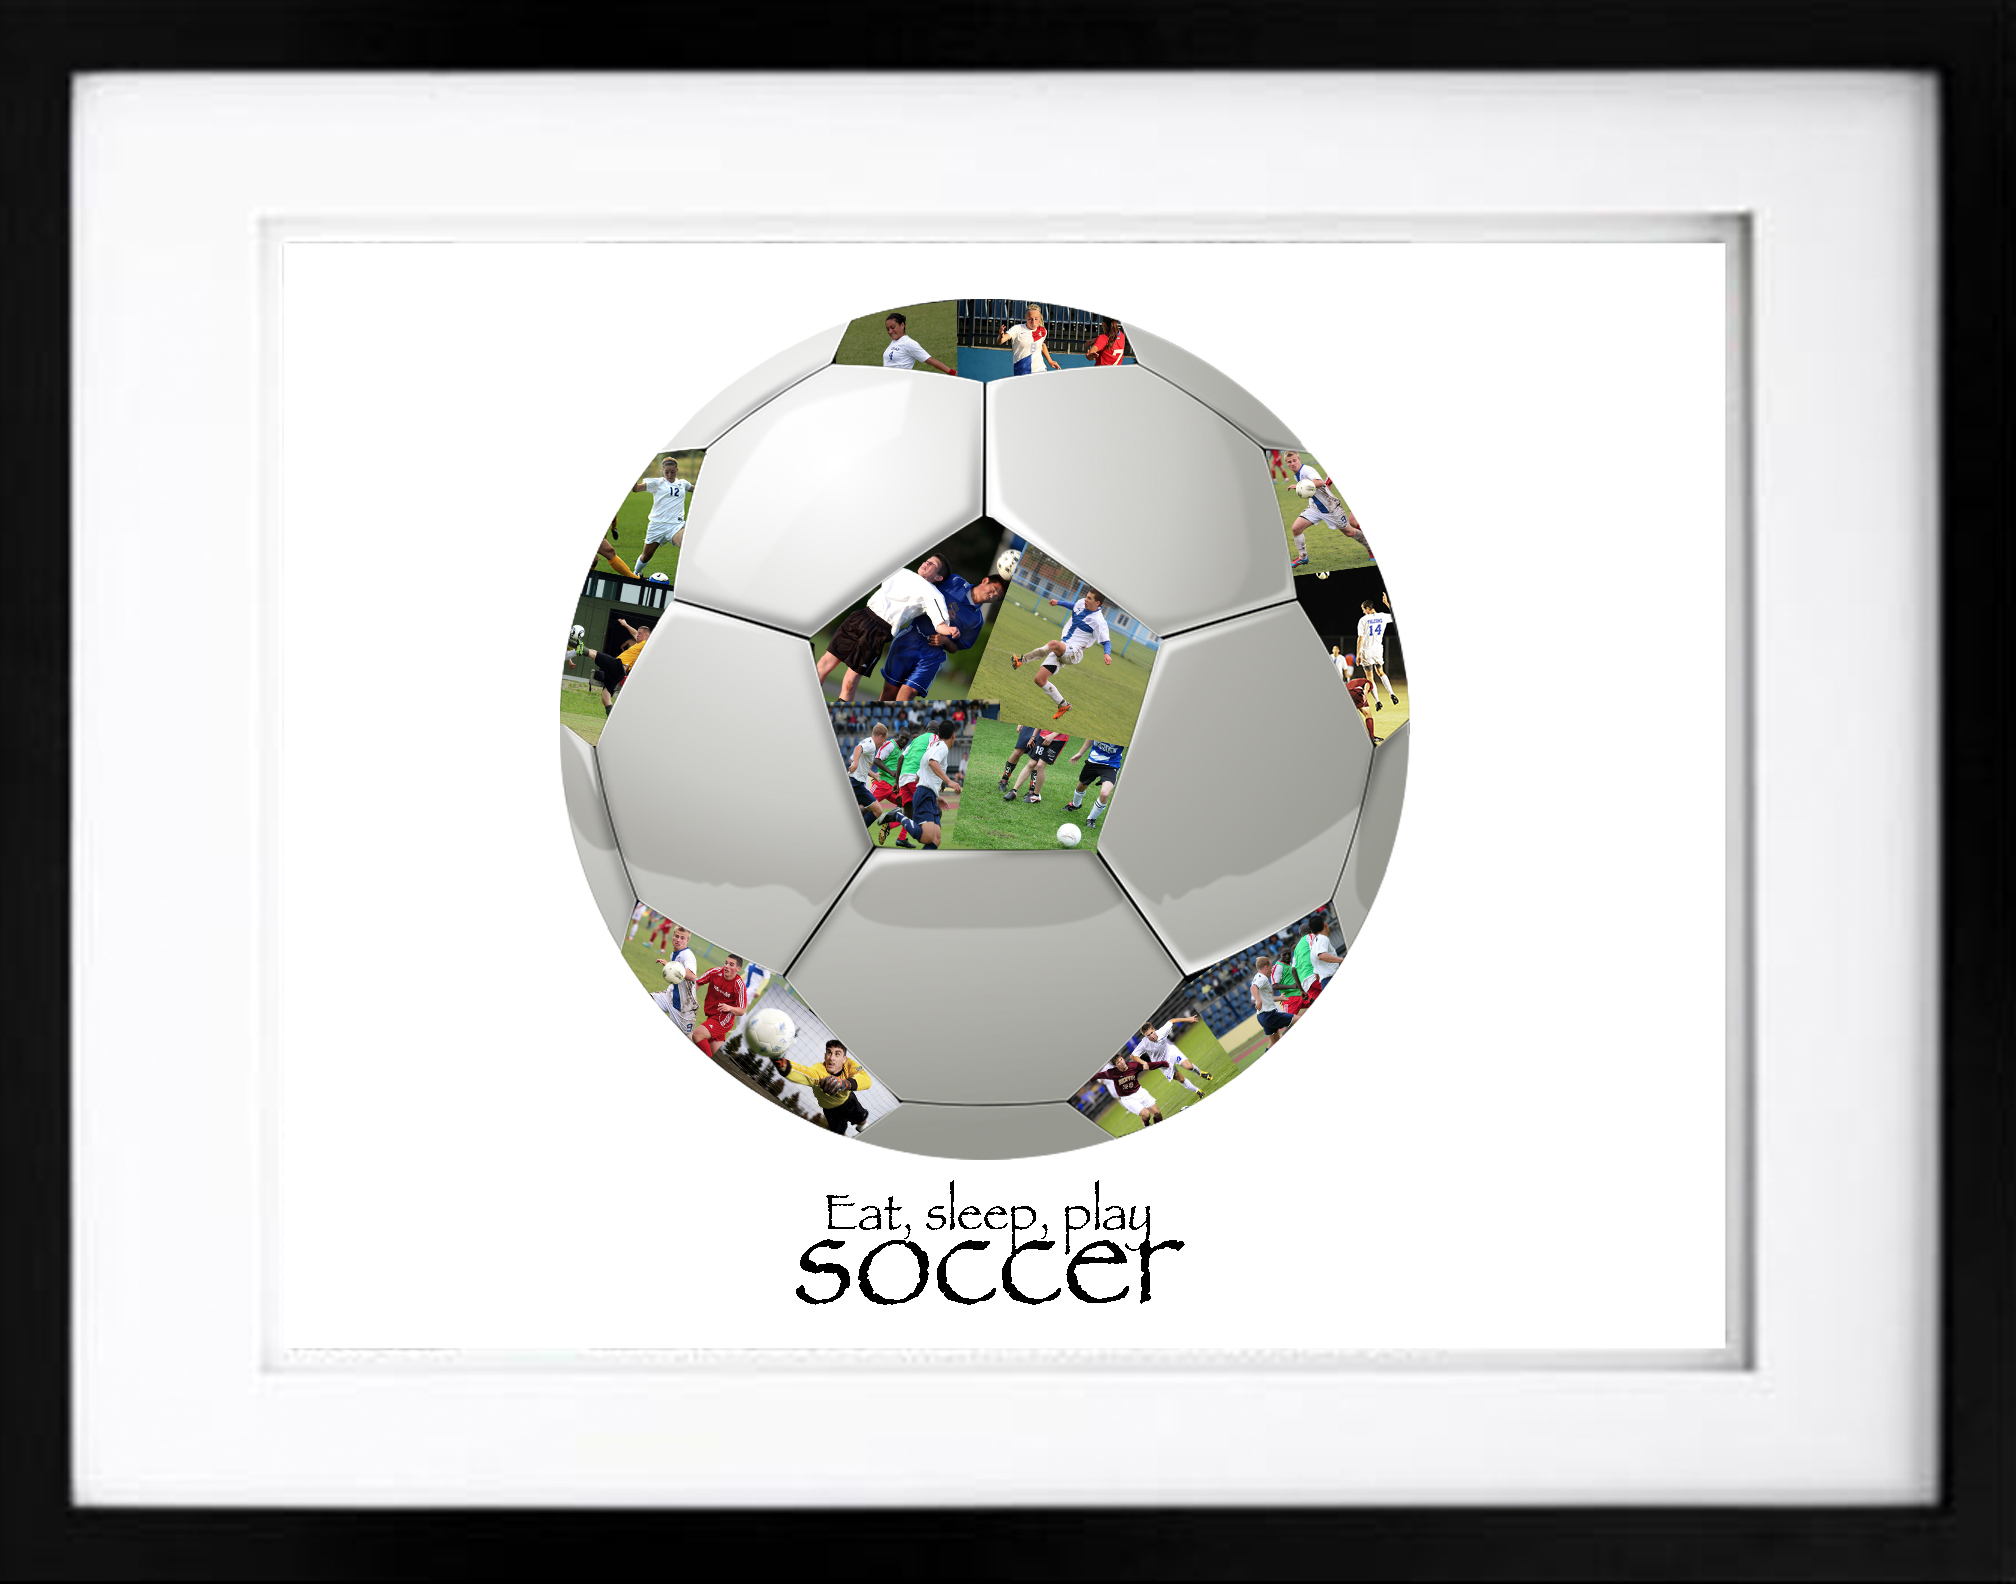 Soccer Ball #1 - Black Embedded - Premium, Hand-Crafted Photo ...